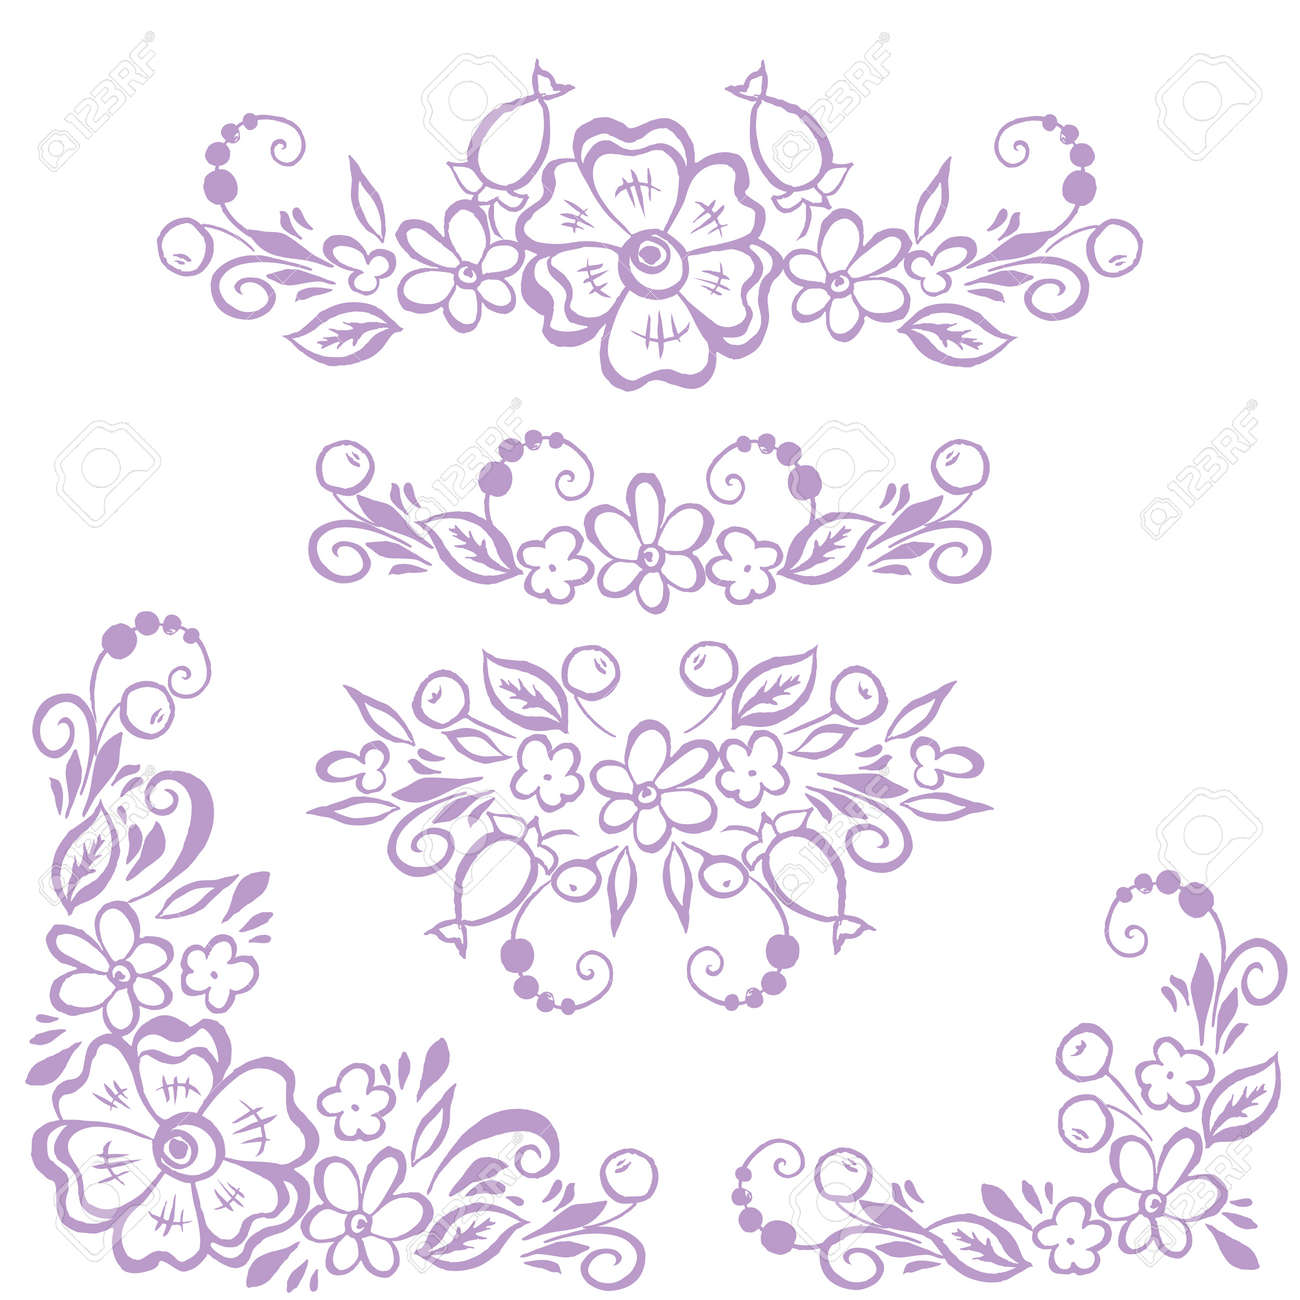 graphic about Printable Embroidery Patterns known as Preset of borders, ornamental supplies for style and design, print, embroidery